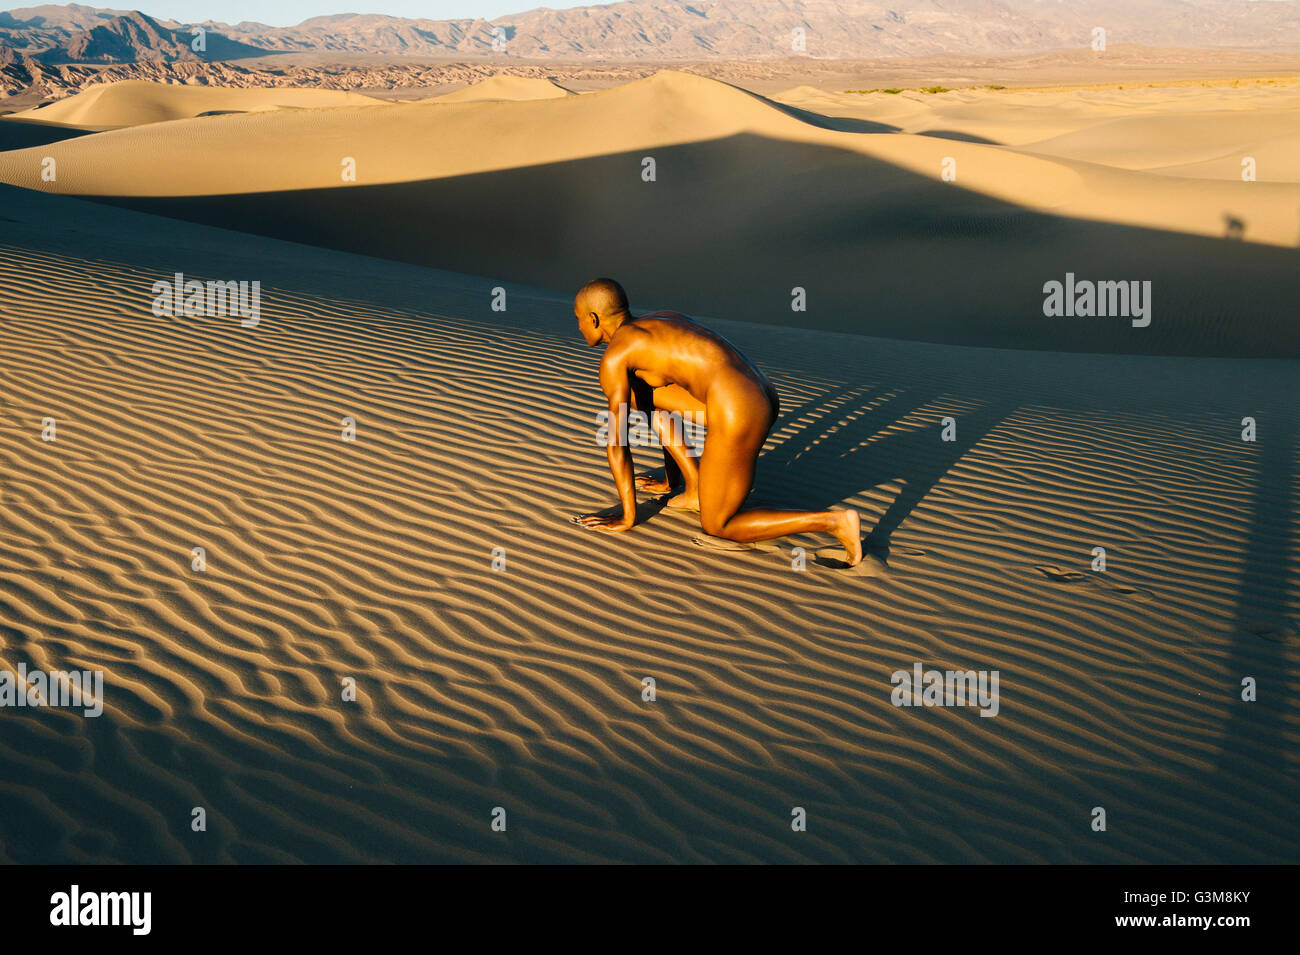 Nude woman in start position in dessert - Stock Image